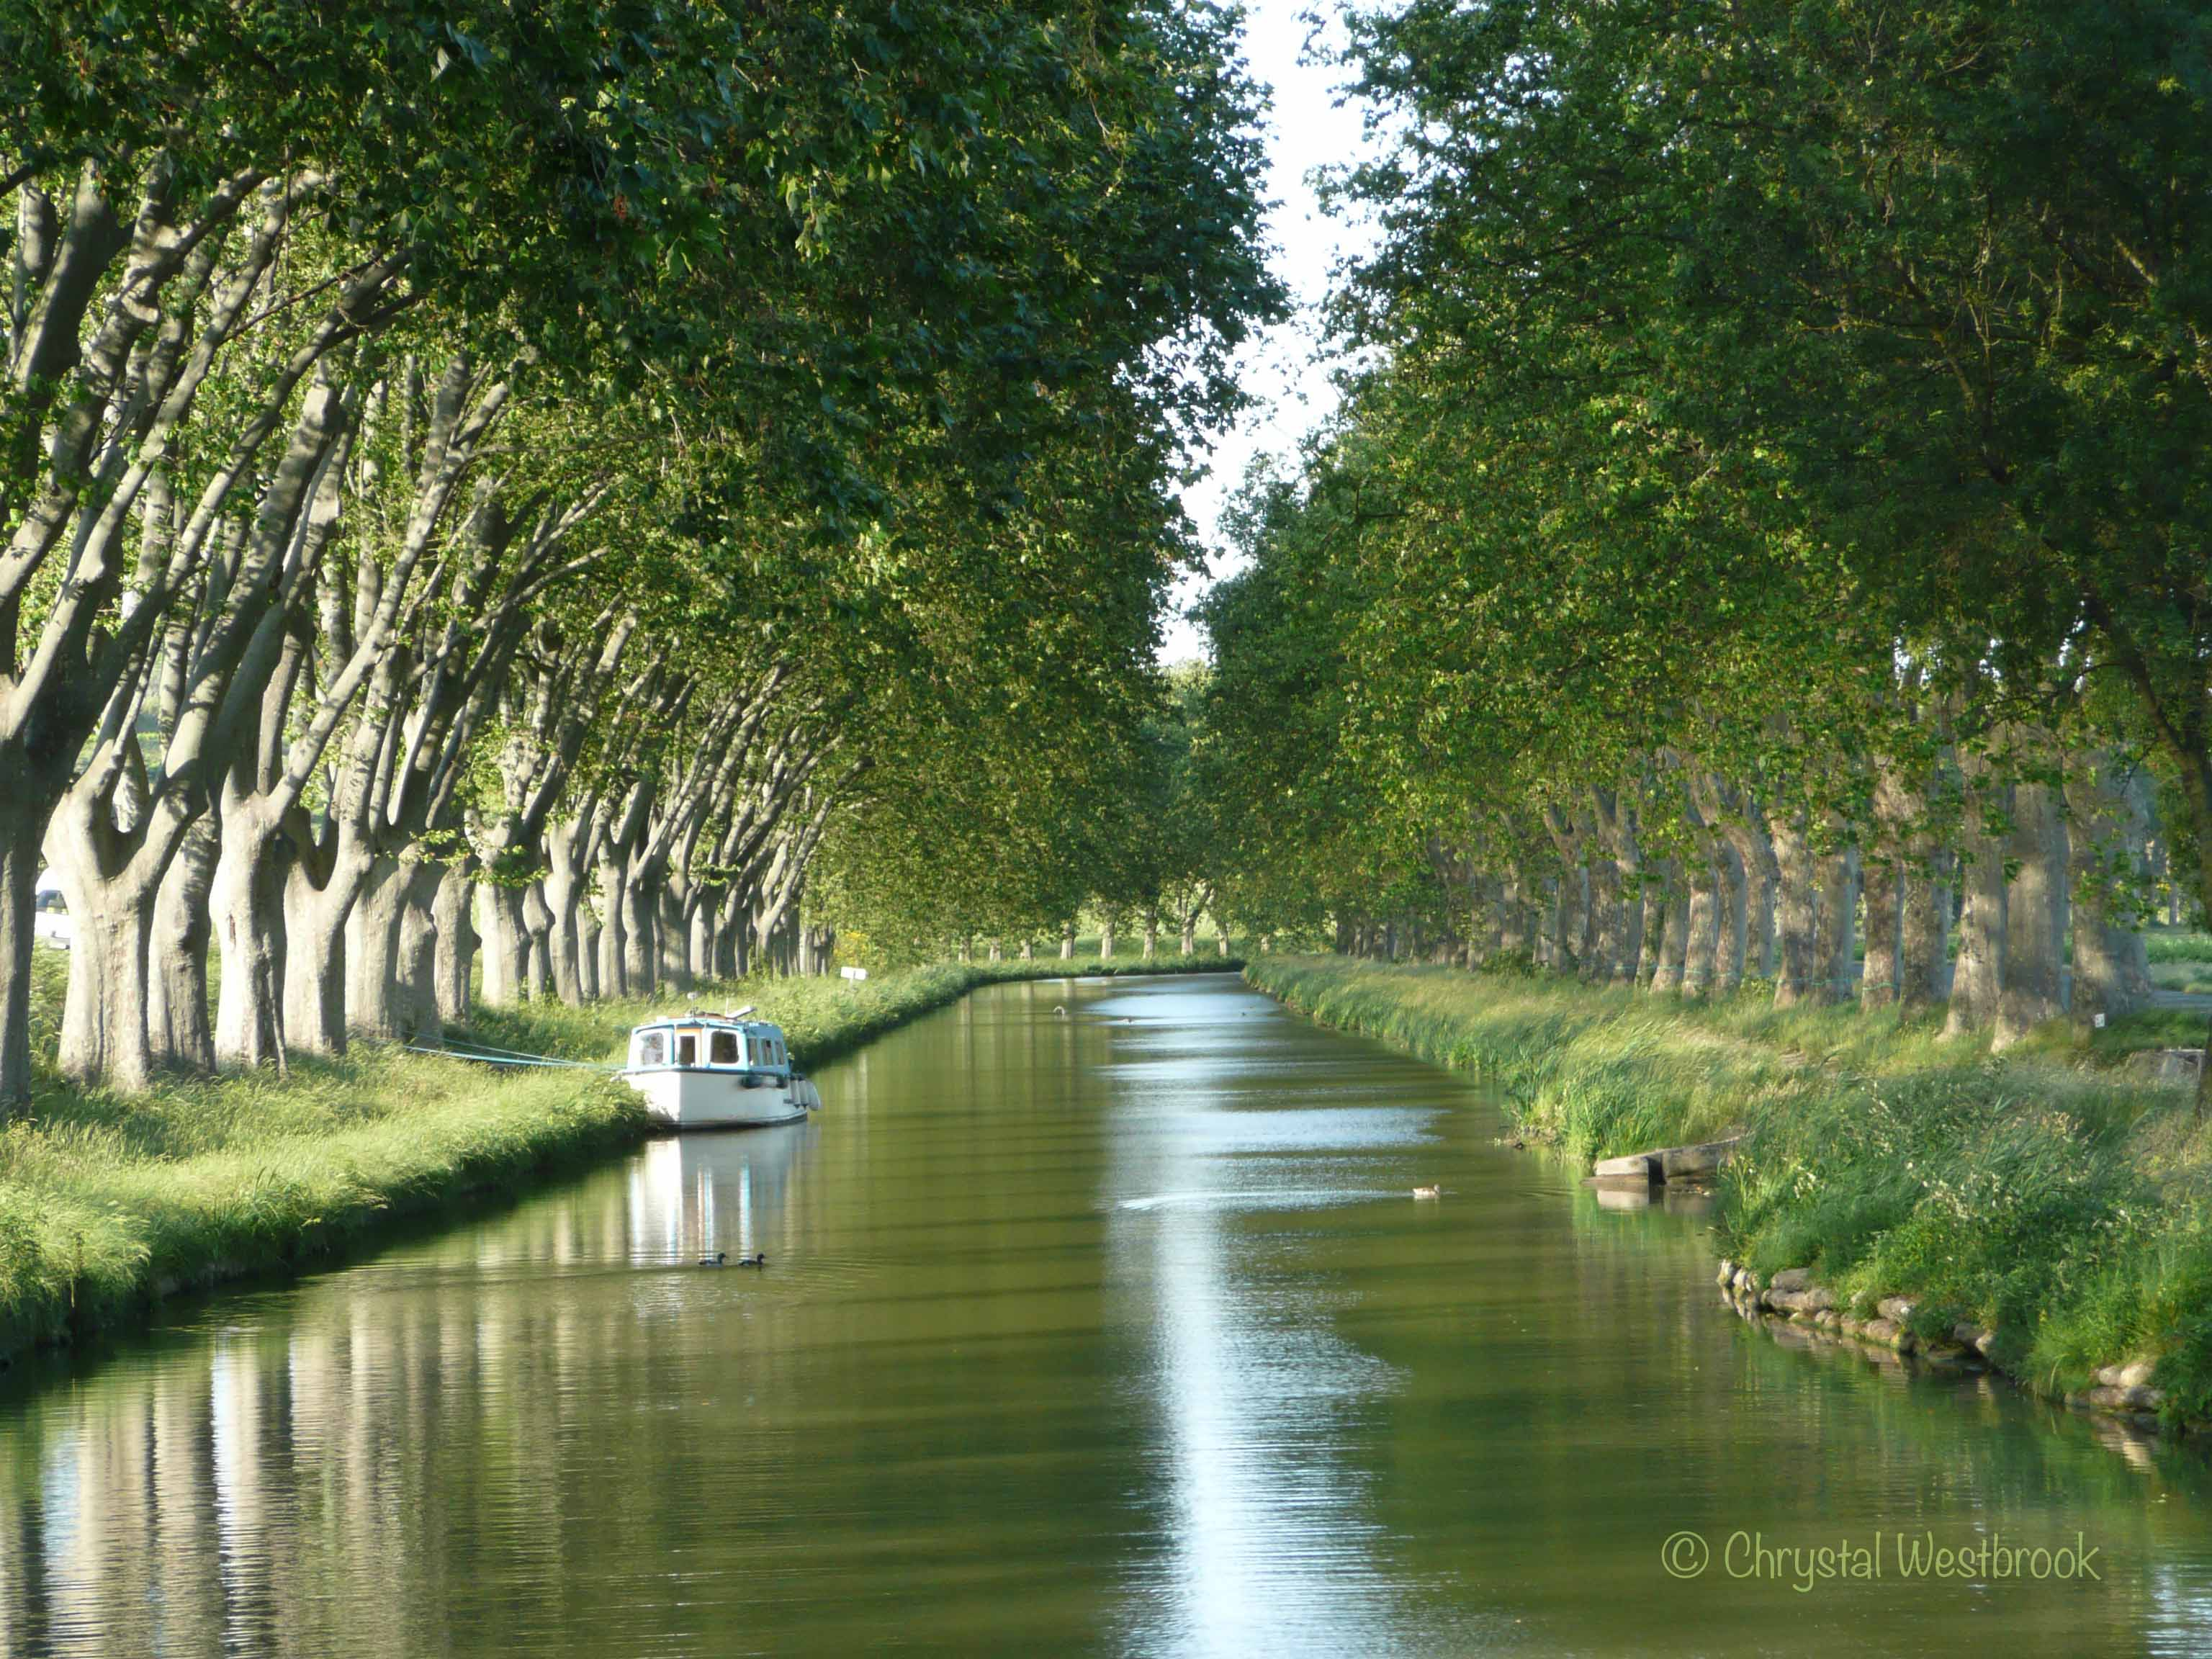 [IMAGE] Tree-lined Canal du Midi in summer